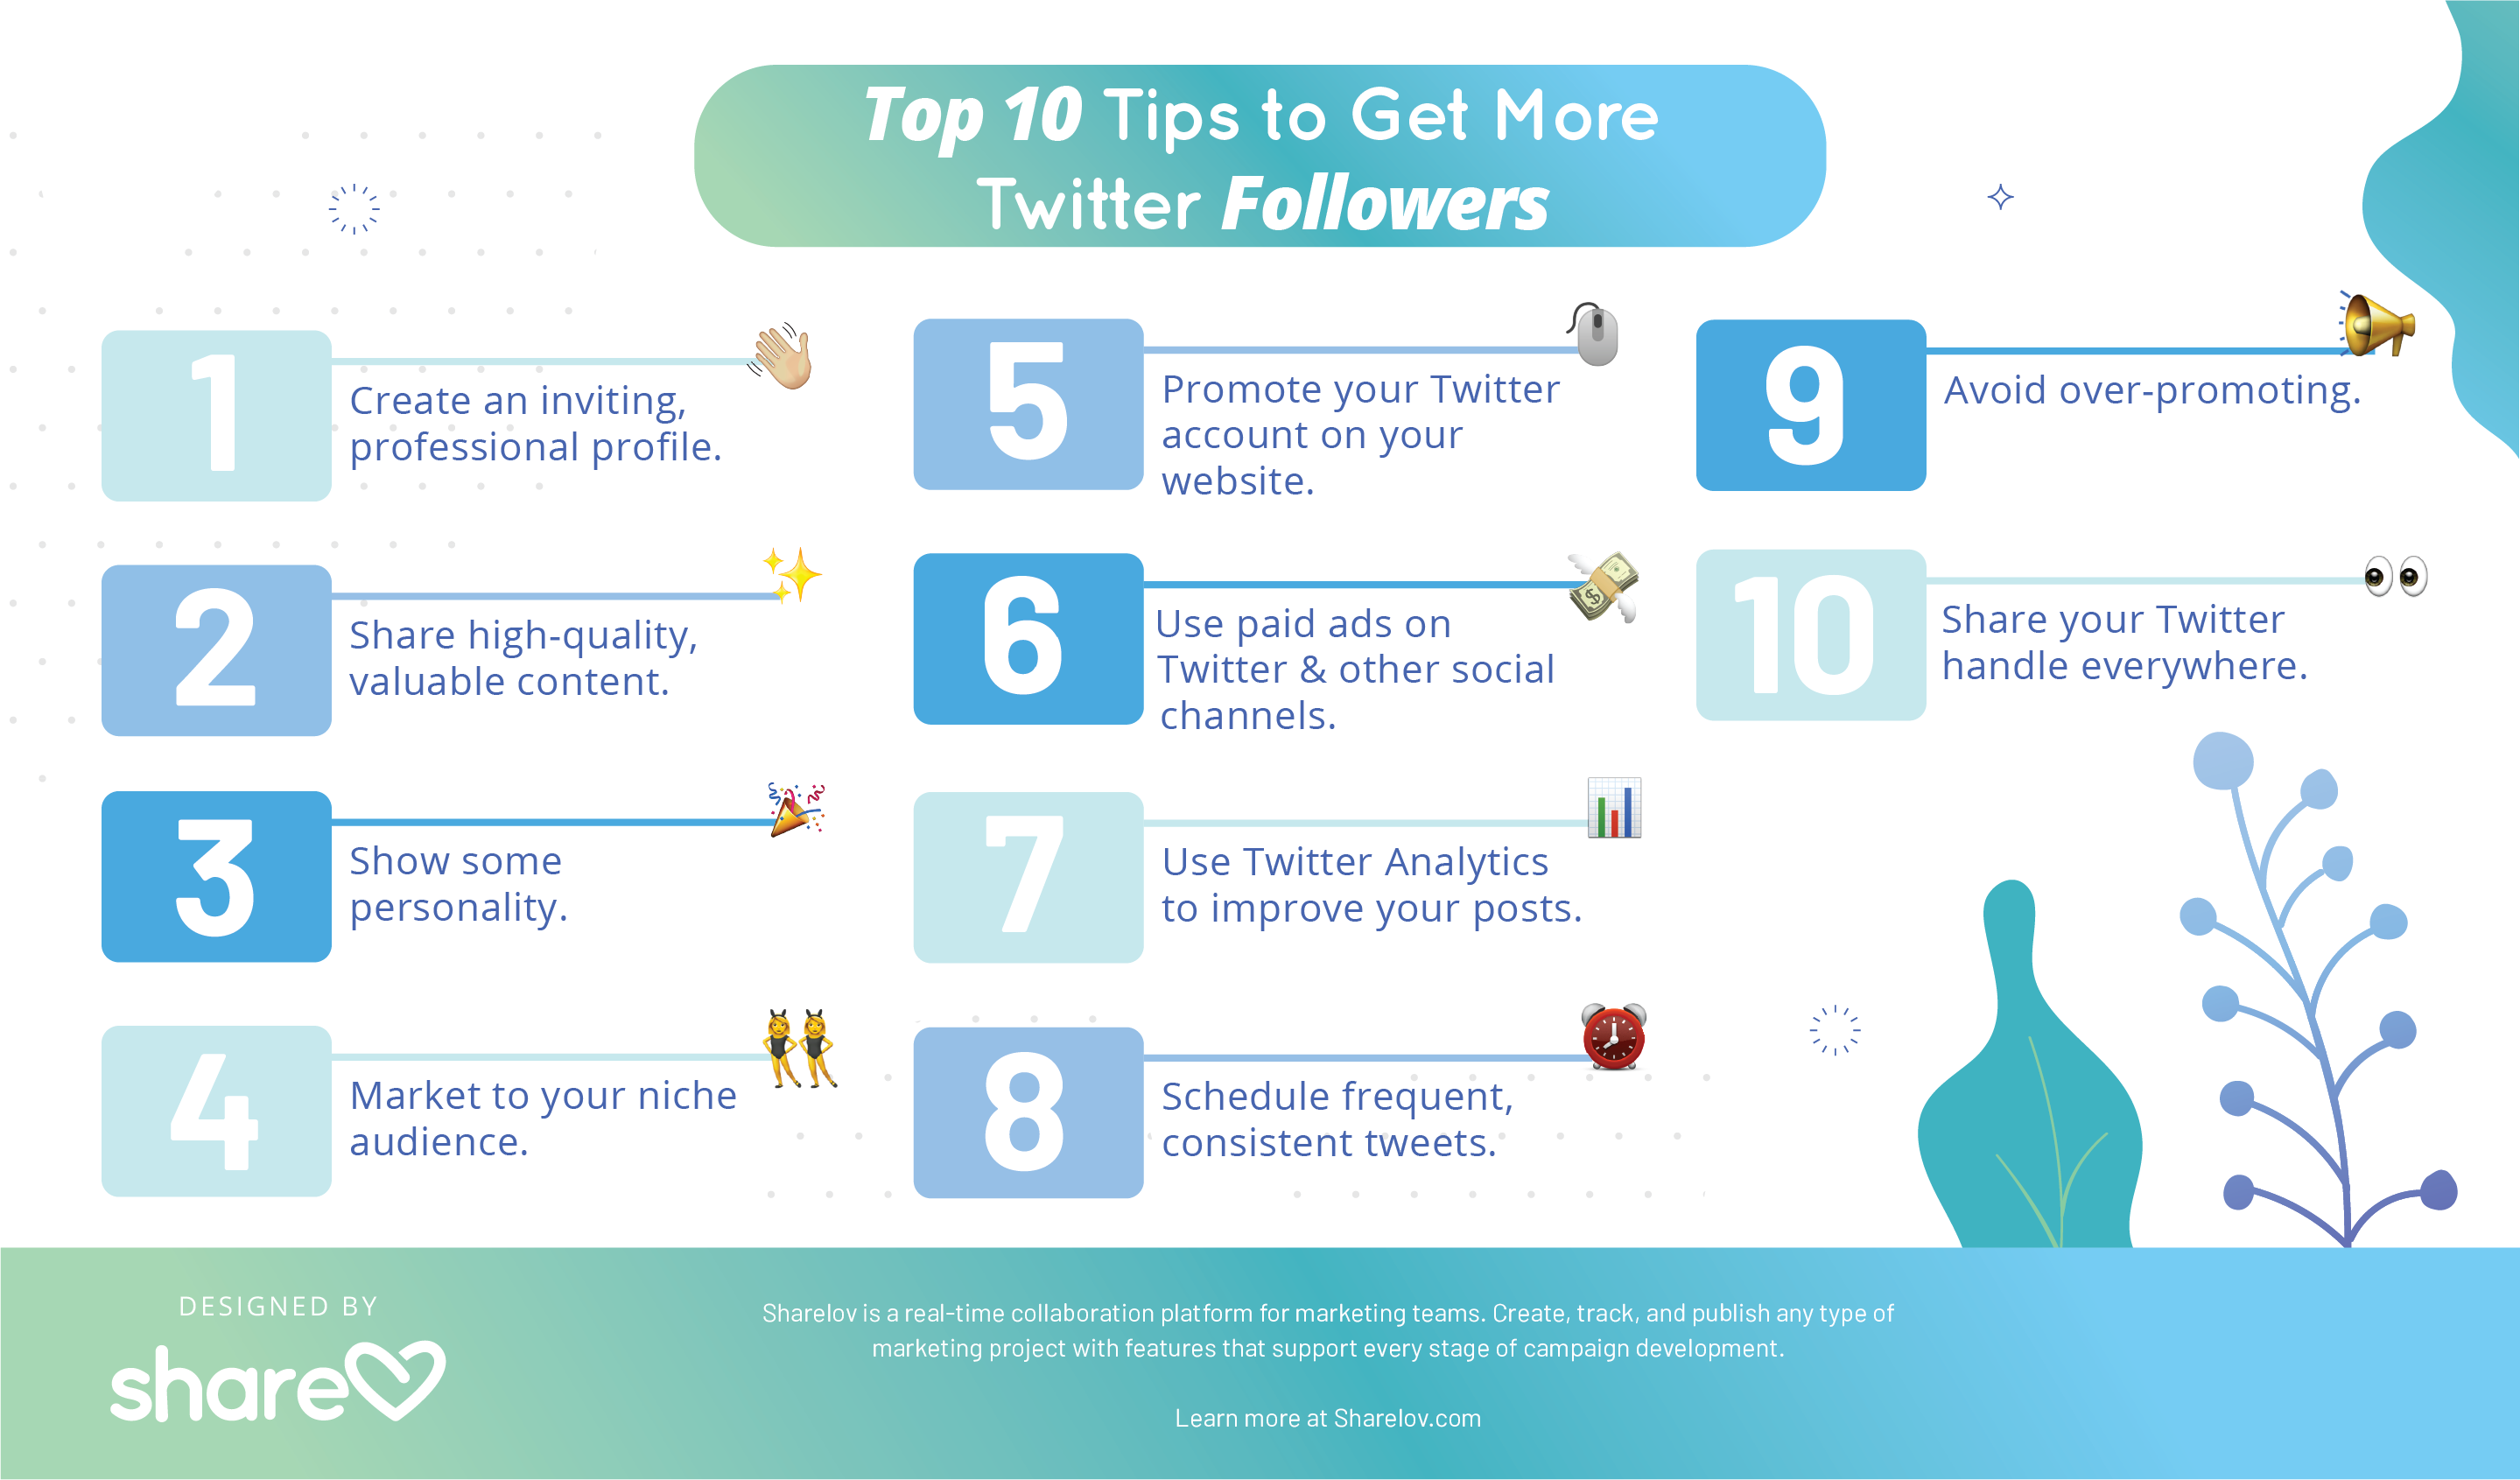 8 Top Formatting Tips for Twitter